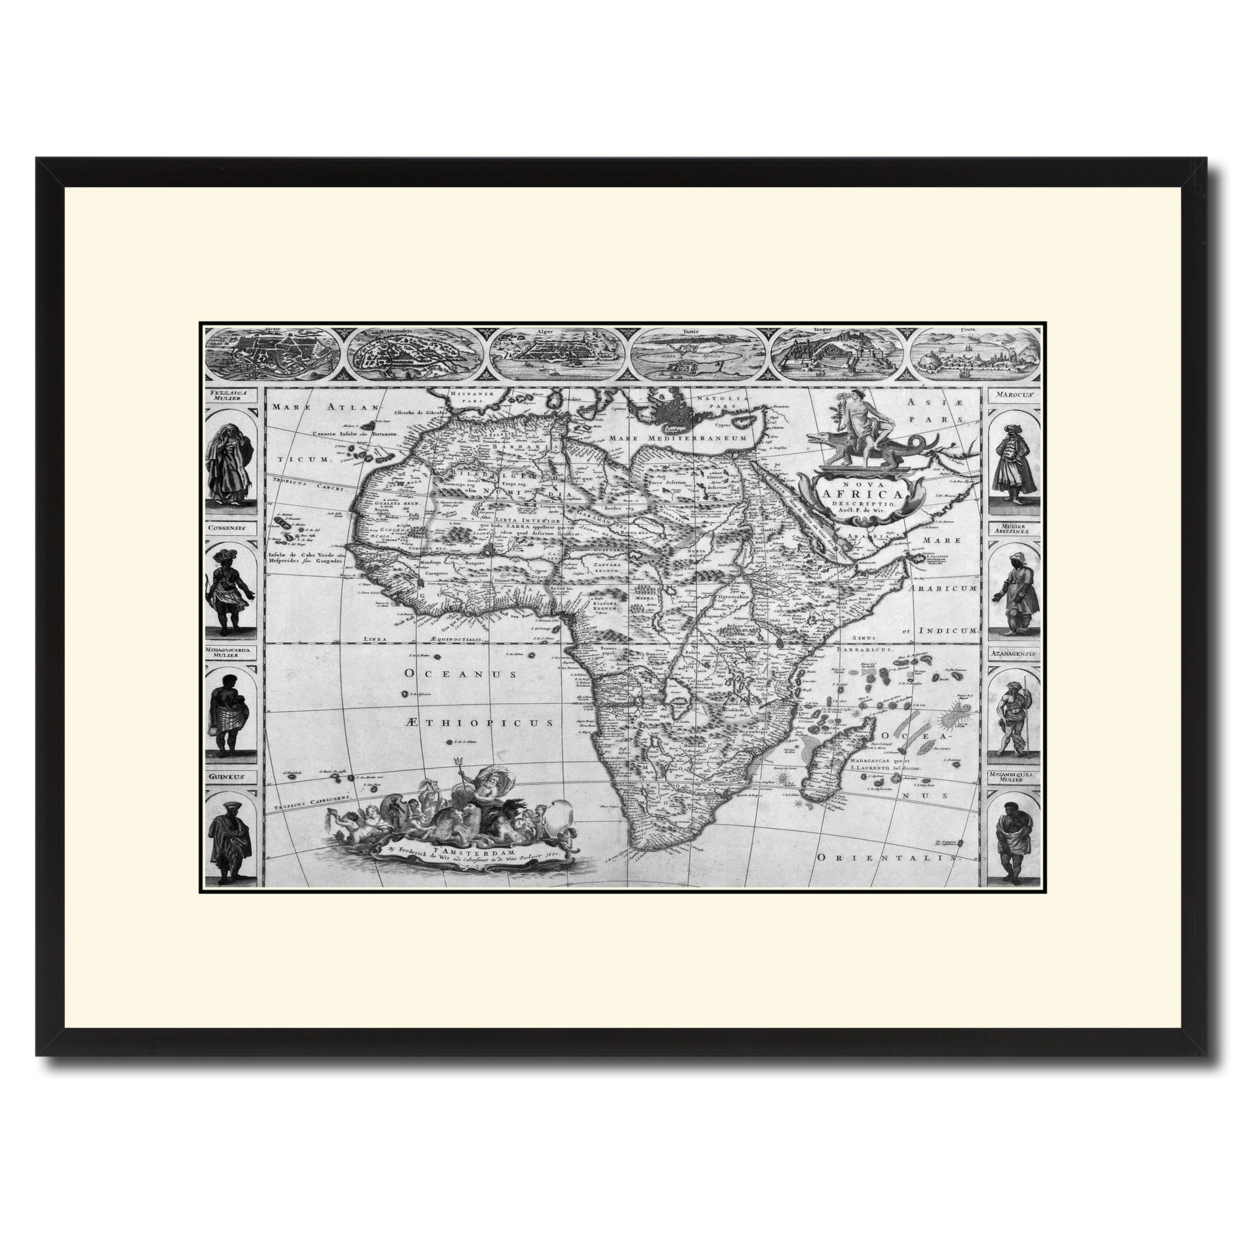 Africa Vintage B&w Map Canvas Print With Picture Frame Home Decor Wall Art Gift Ideas